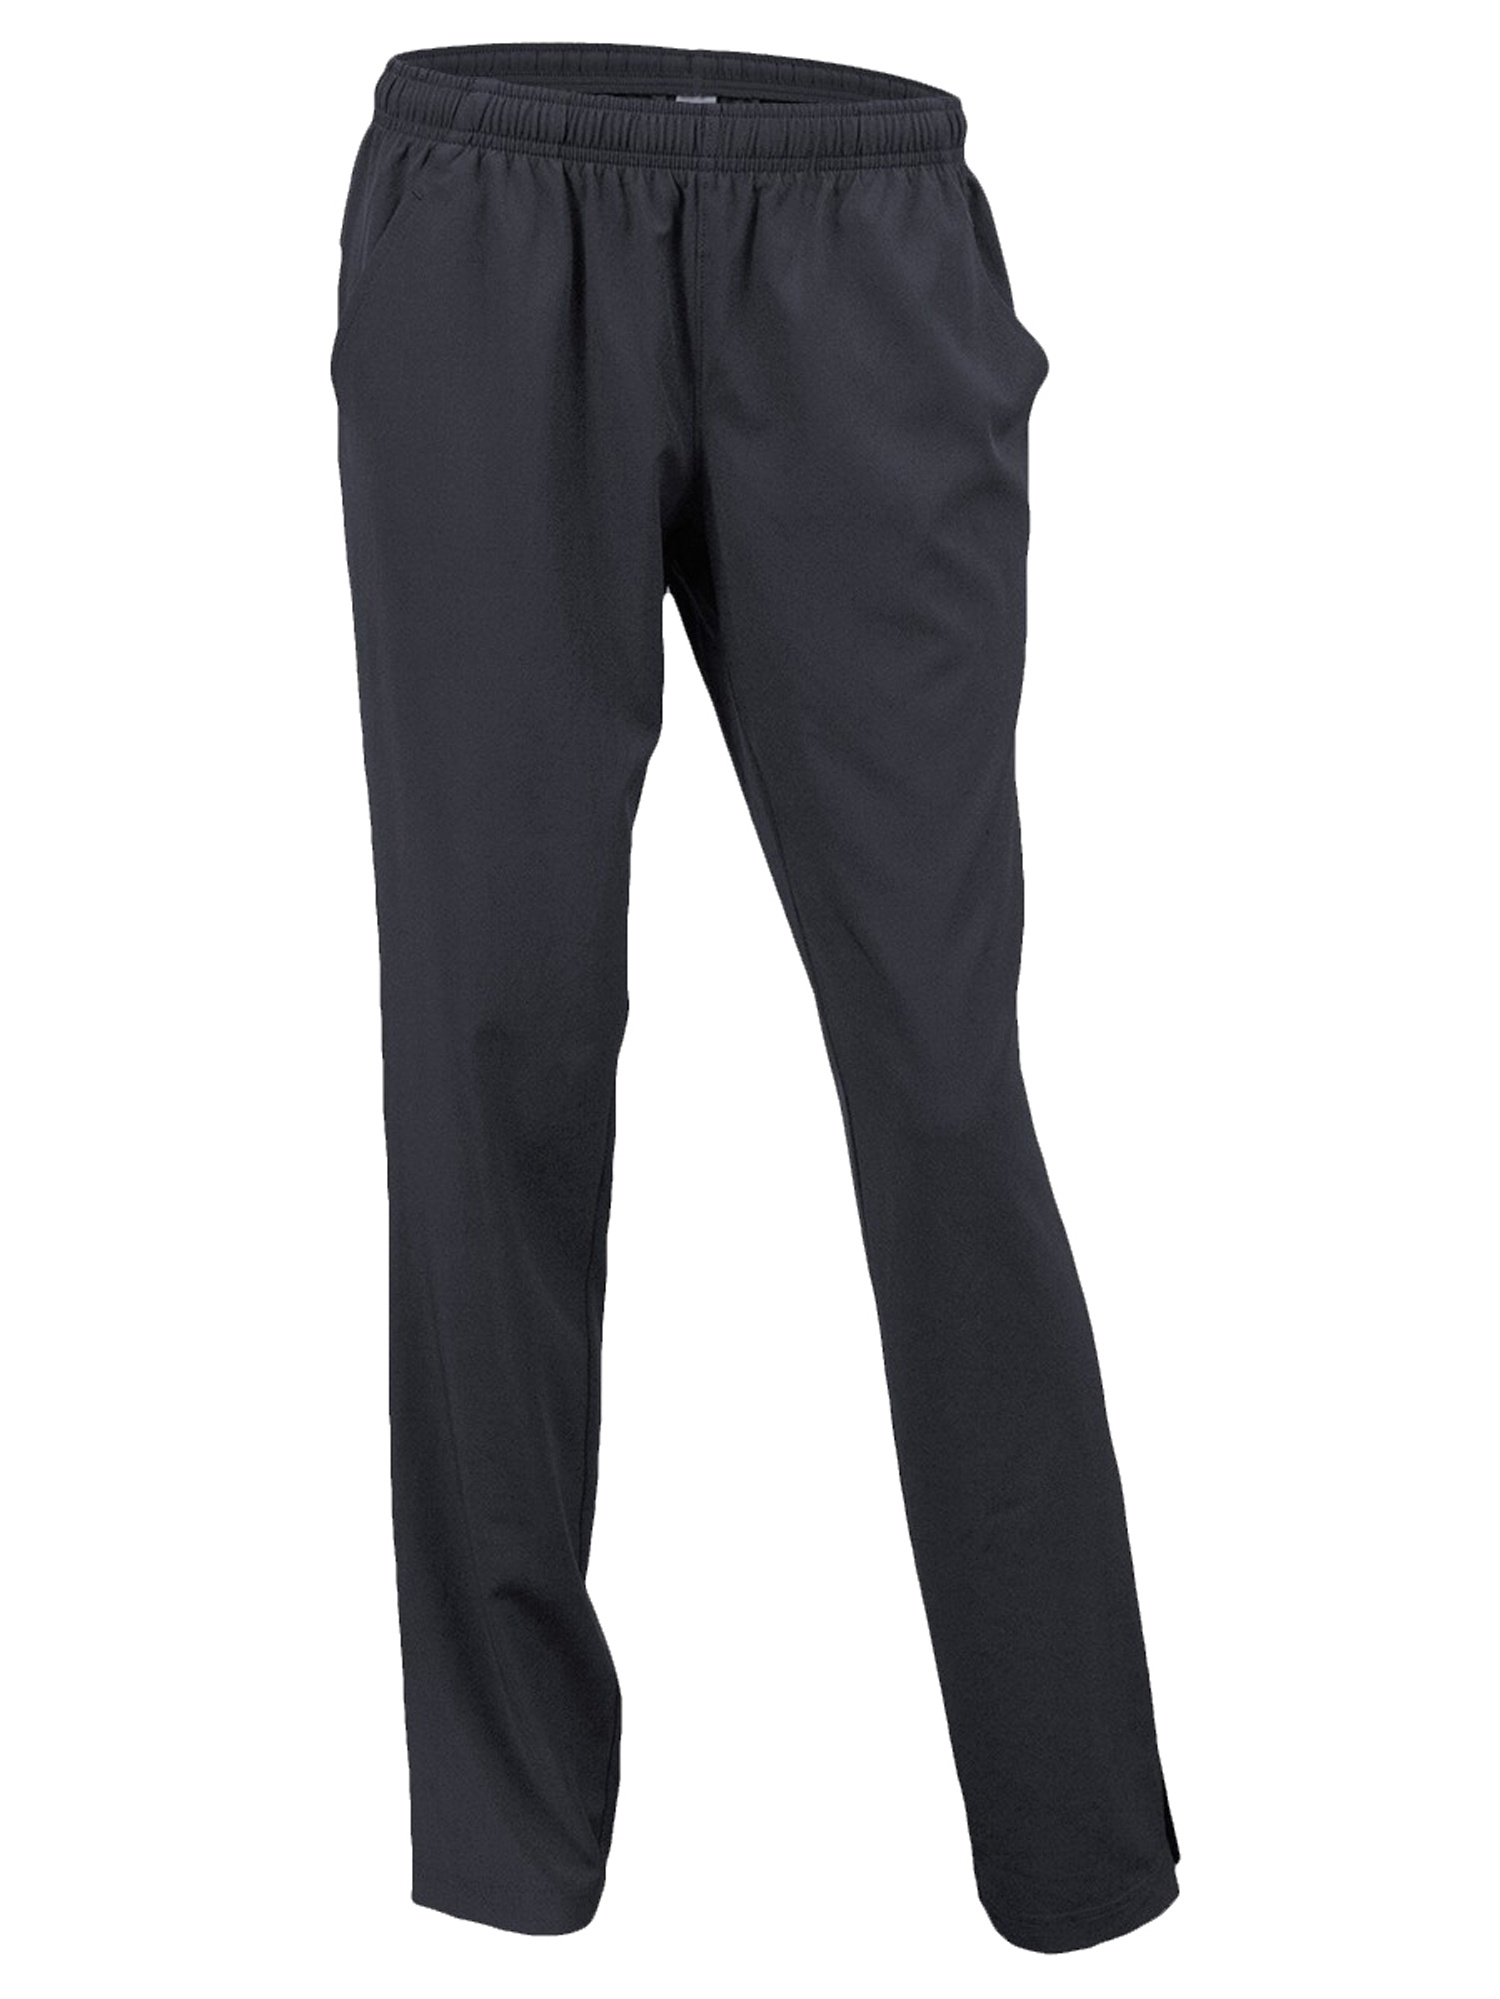 Soffe Women's Side Pockets Covered Zippers Warm Up Pant